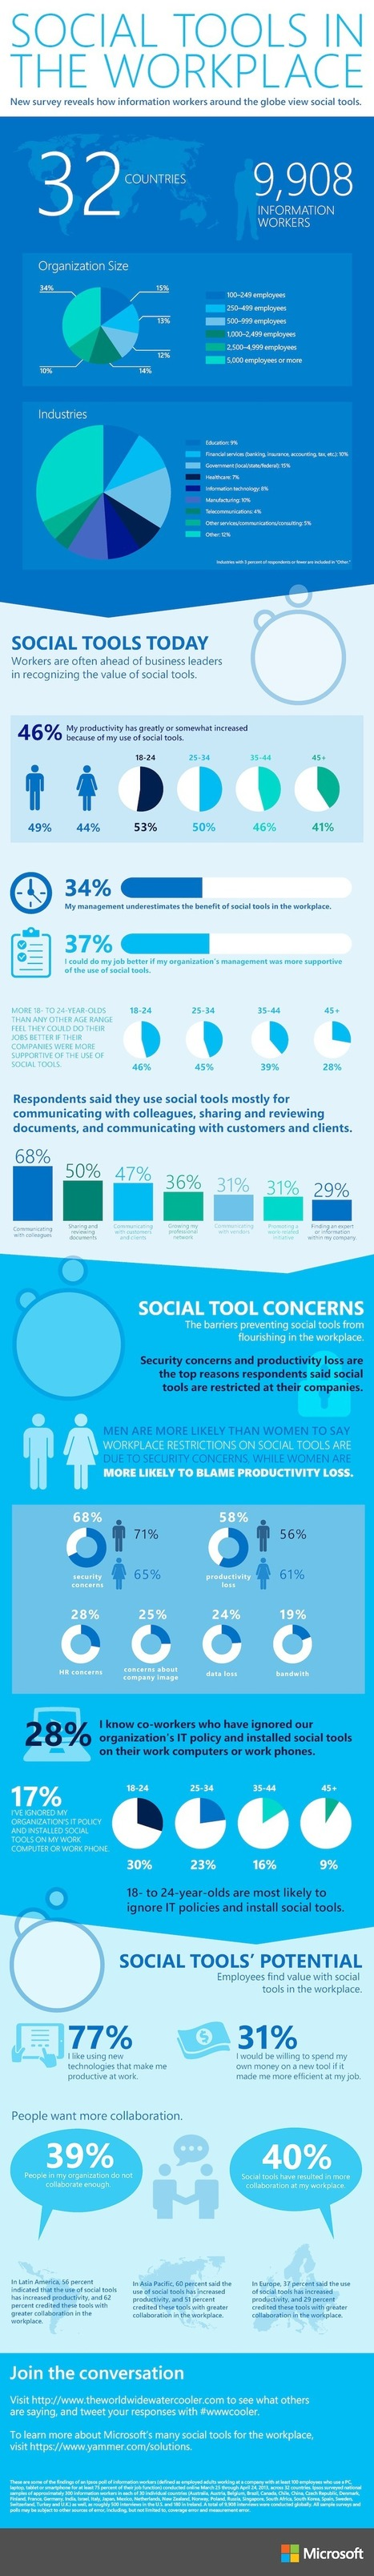 Microsoft-Social-Tools-in-the-Workplace-Research-Study_0.png (800x5508 pixels) | Study Tips and Resources | Scoop.it